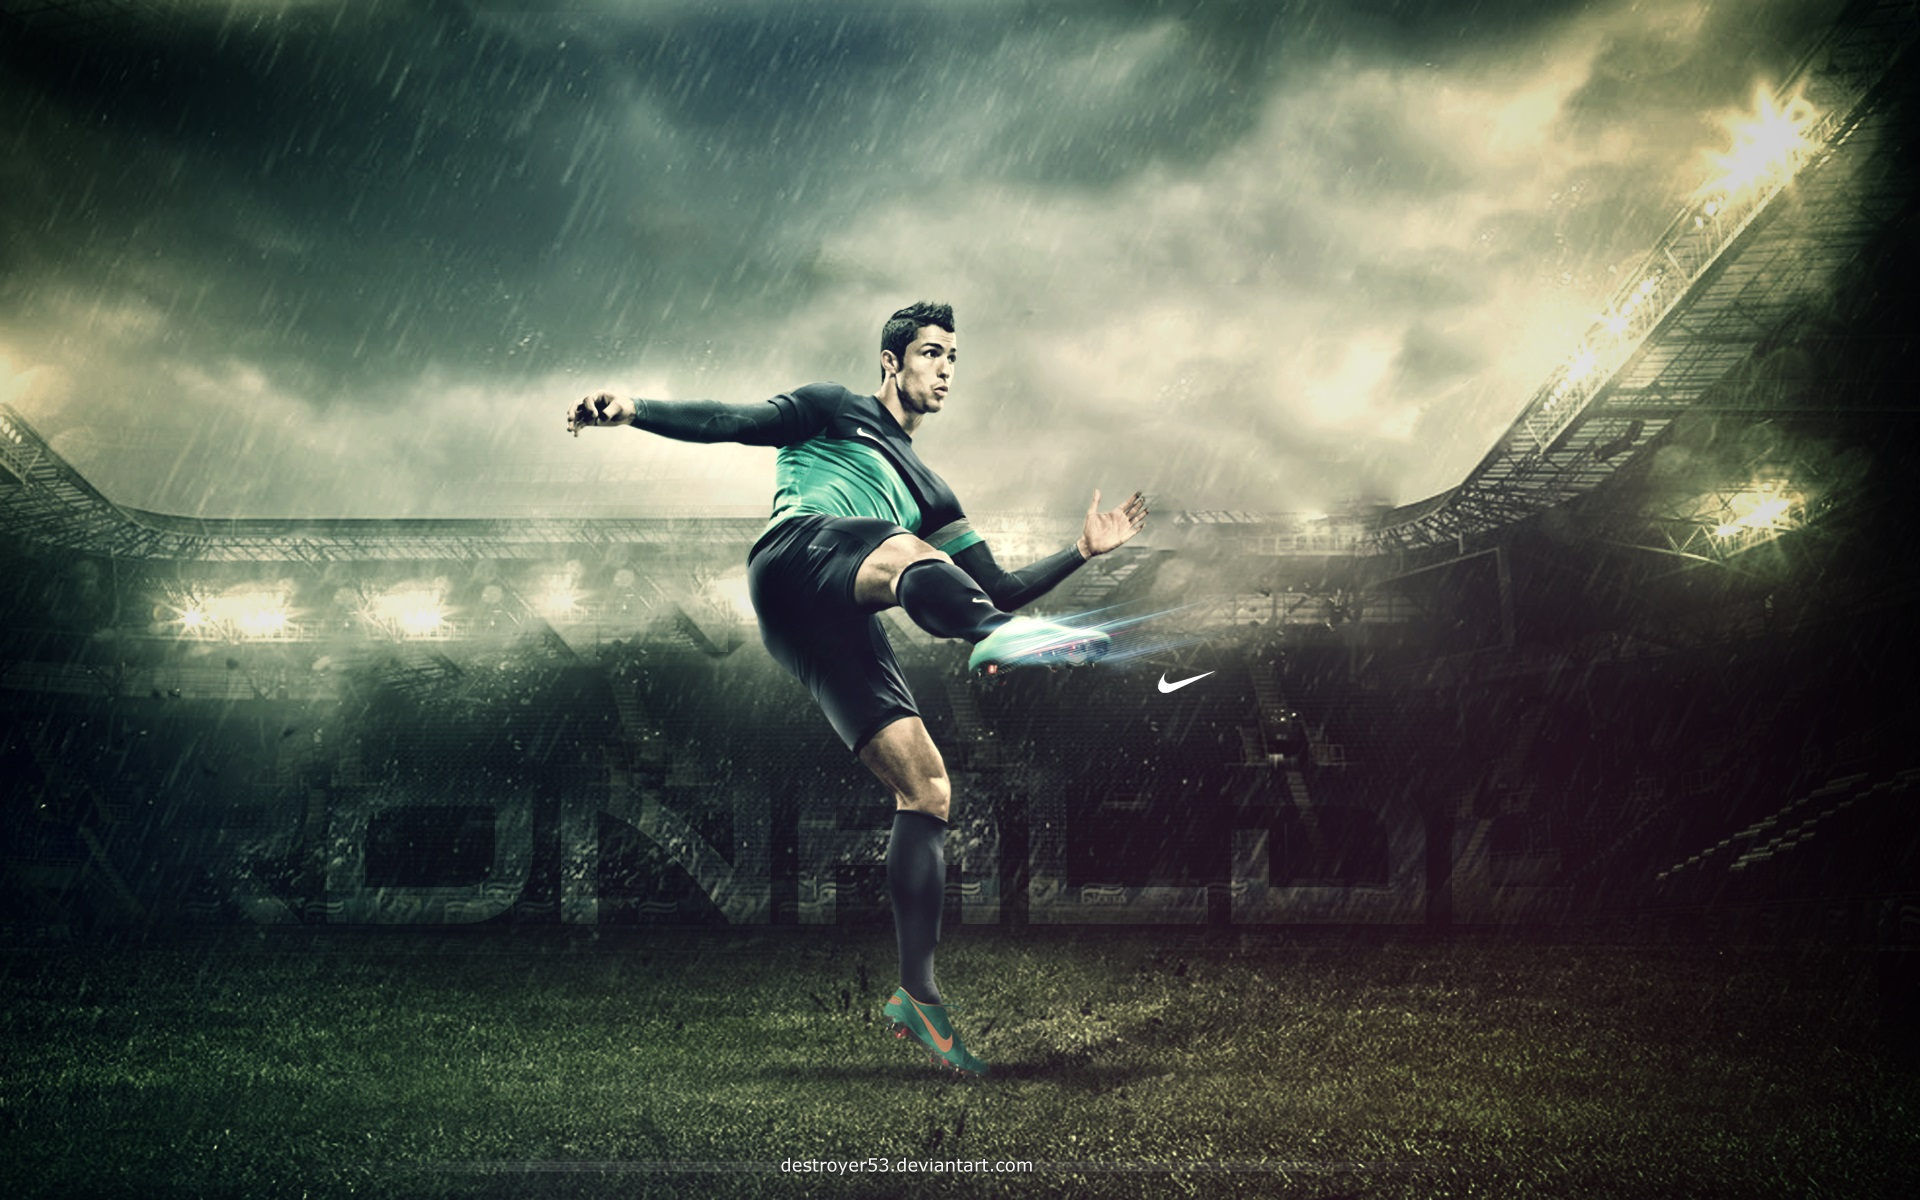 Cristiano Ronaldo Wallpapers HD soccer kick